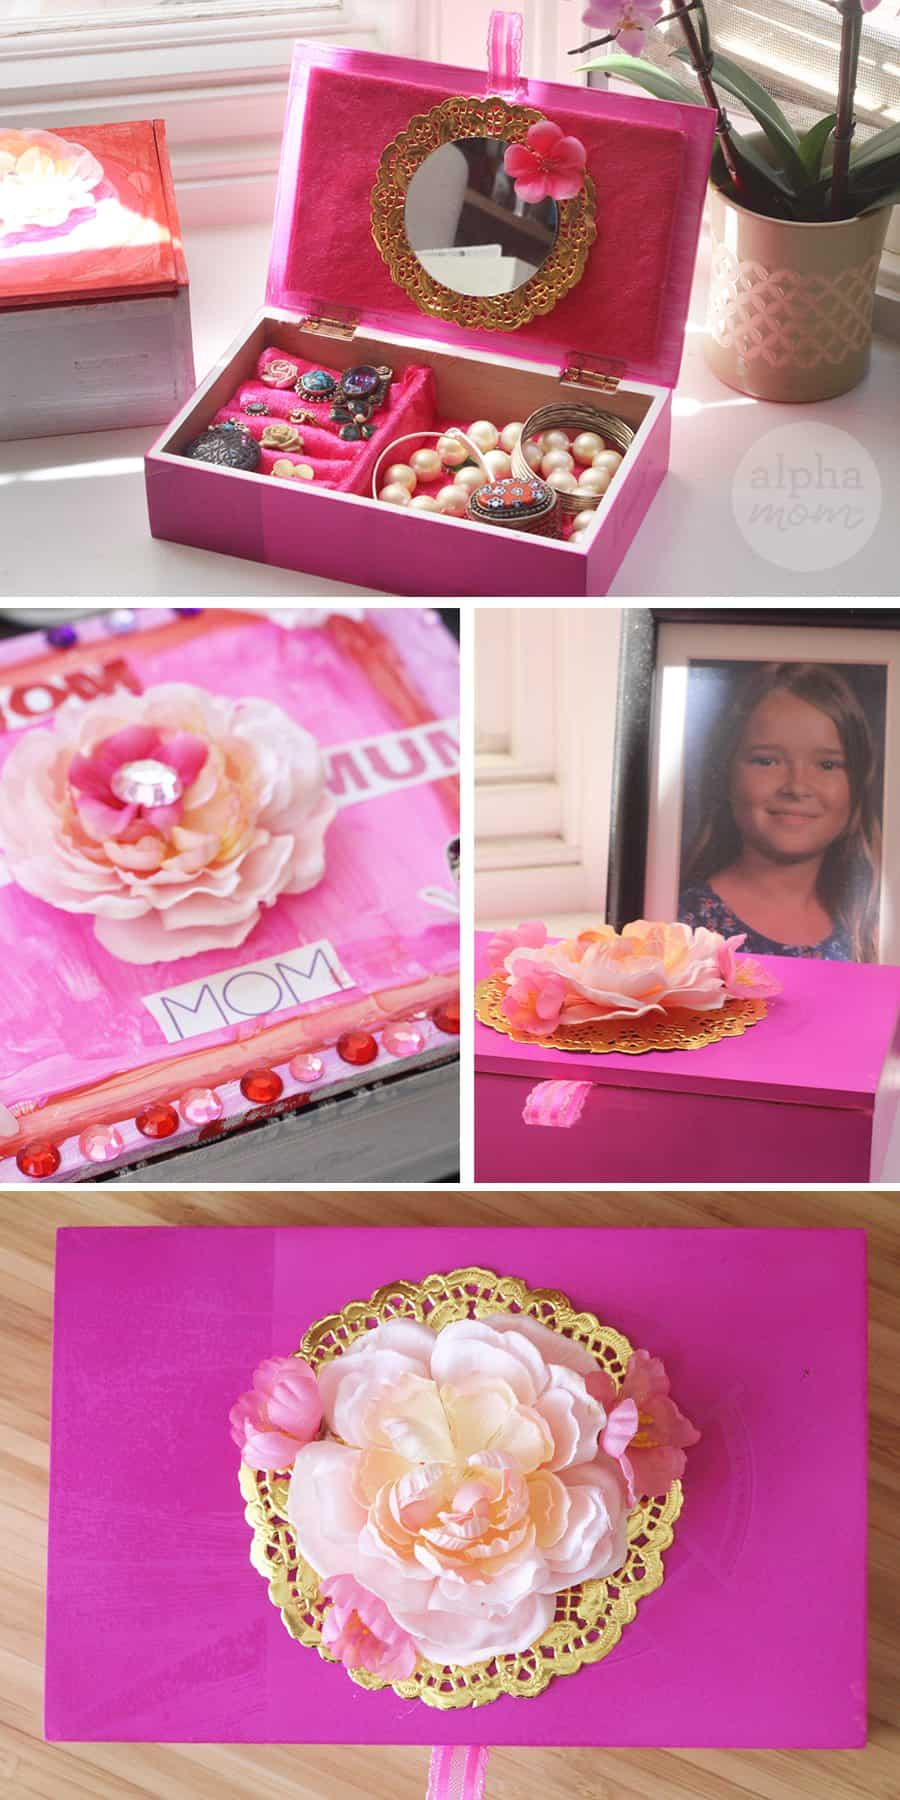 Jewelry Box DIY for Mother's Day (decorating ideas) by Brenda Ponnay for Alphamom.com